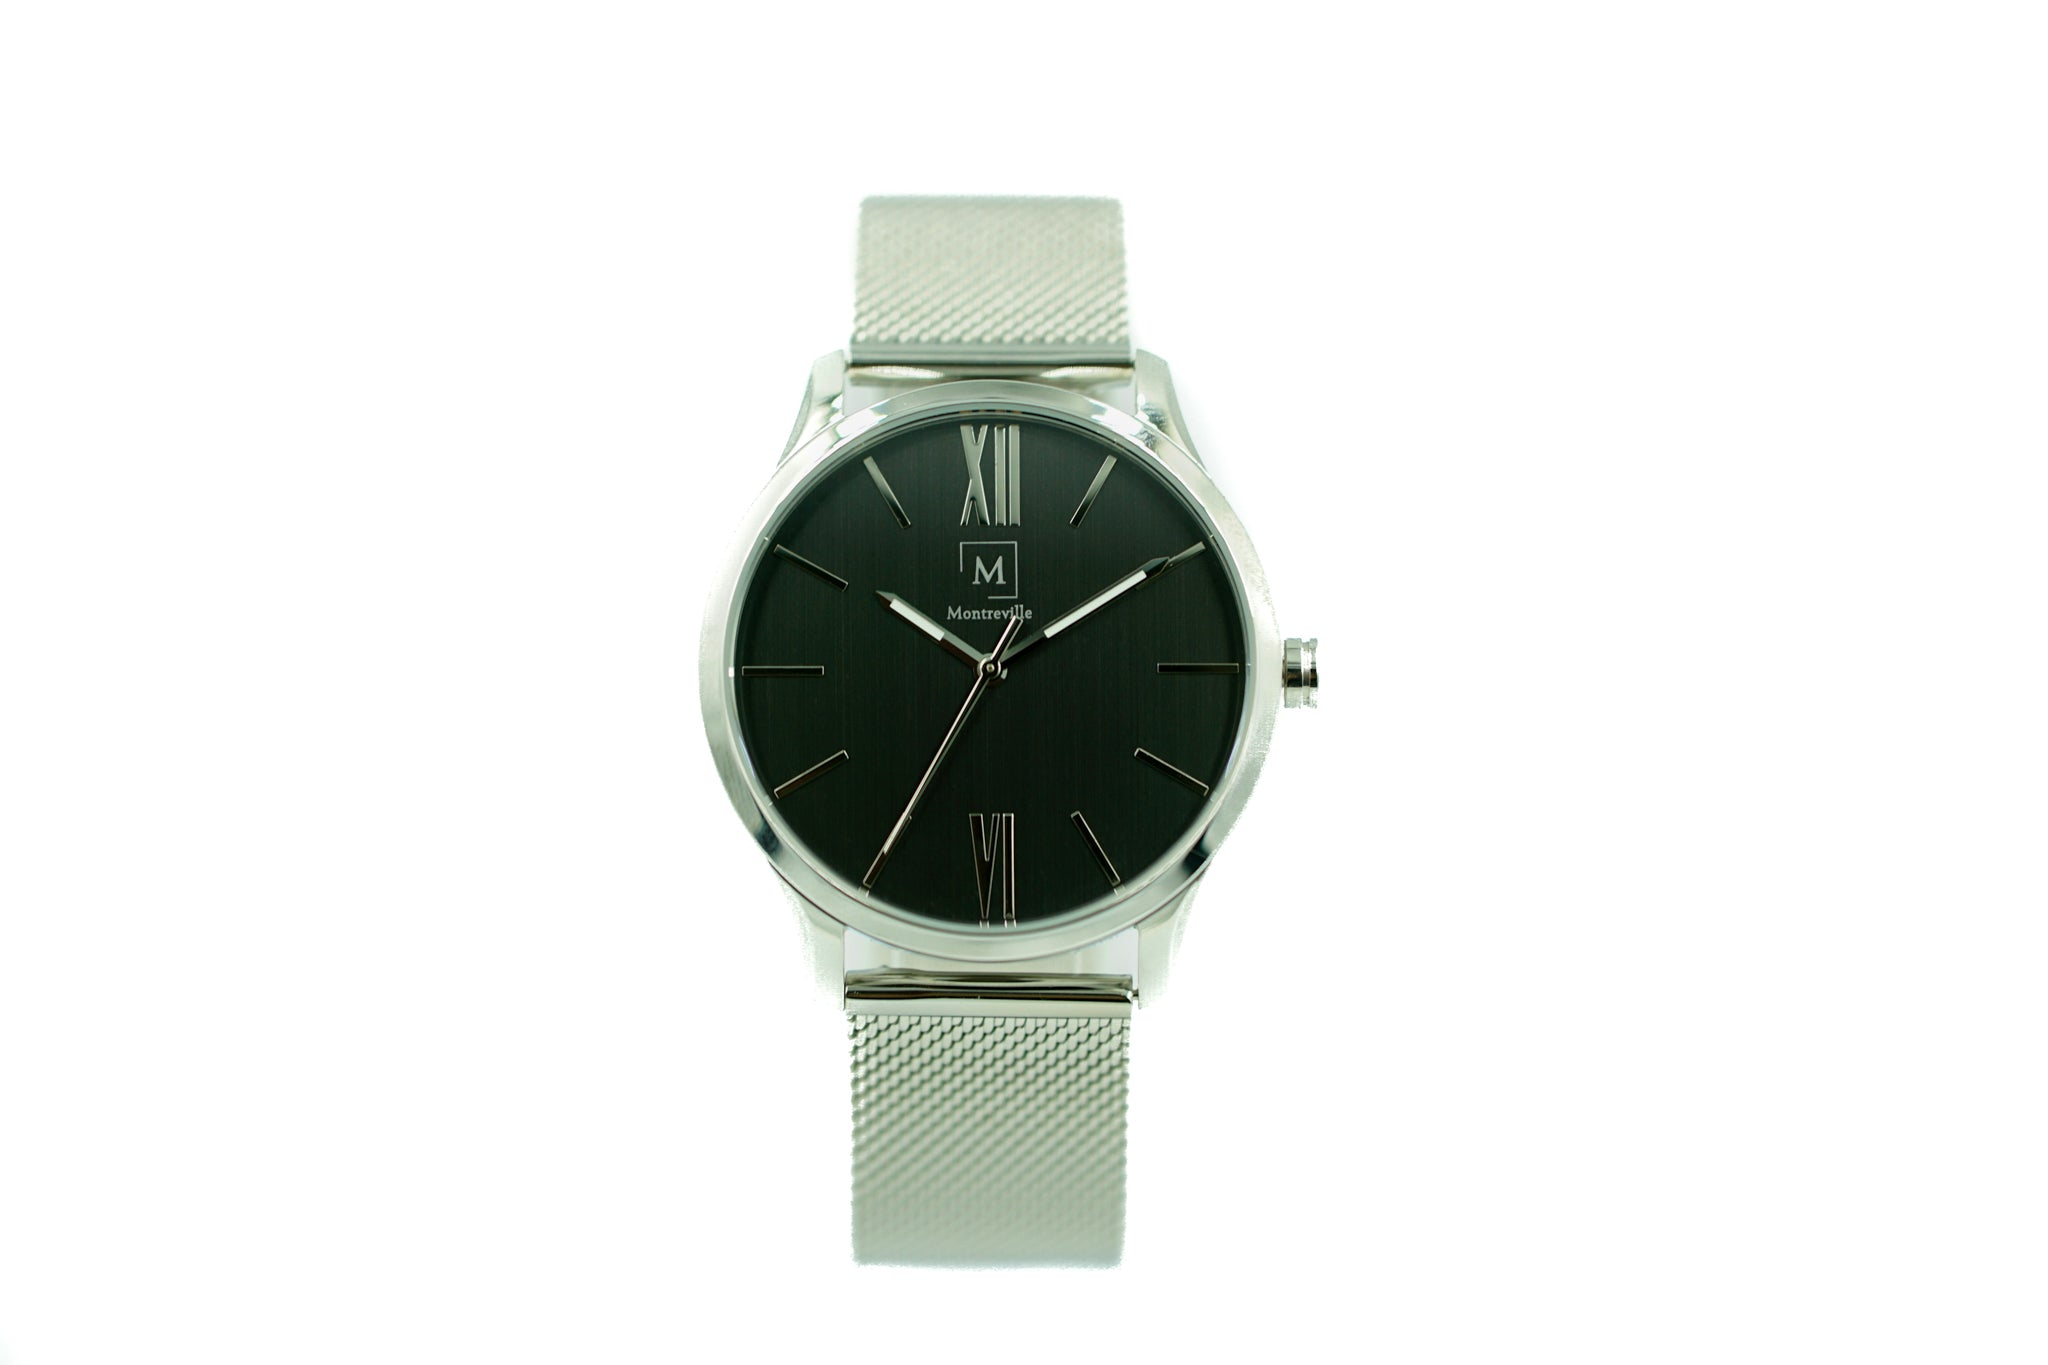 Silver watch called Tokyo from the brand Montreville. This is an image of the watch with a white background. The timepiece has an elegant design with minimalistic lay-out. It has roman numerals in silver and a mesh strap in silver.